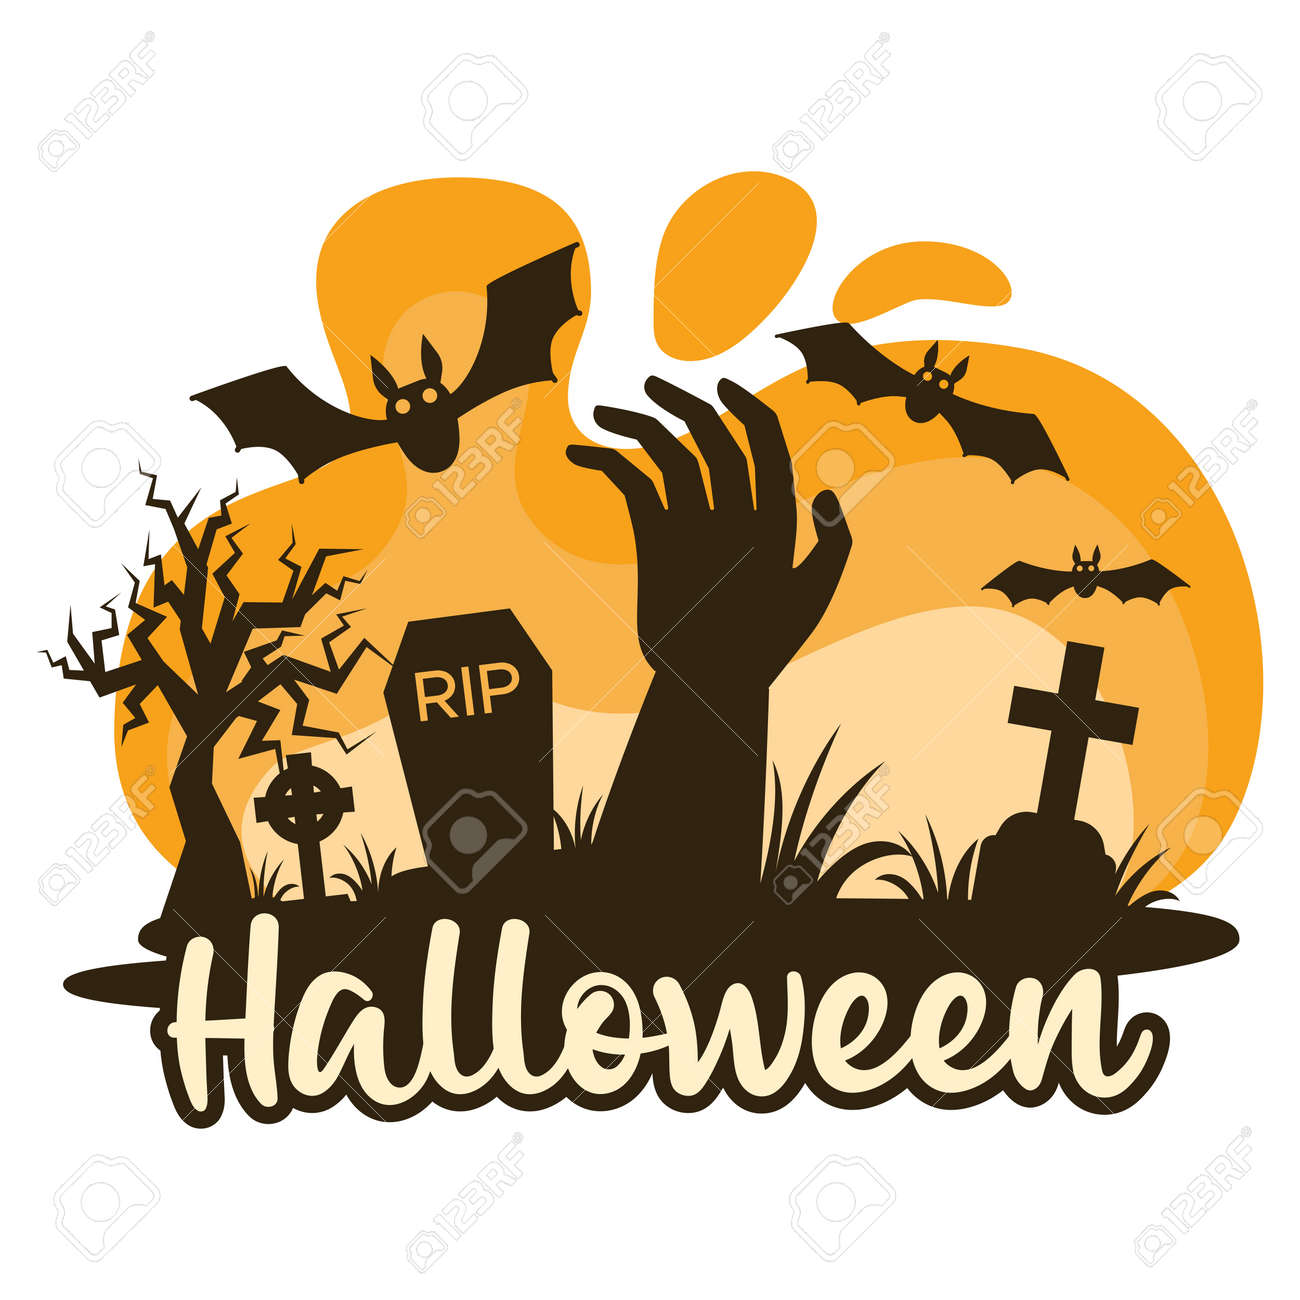 Halloween premade composition with graves, cemetery and zombie hand. Vector - 161156580